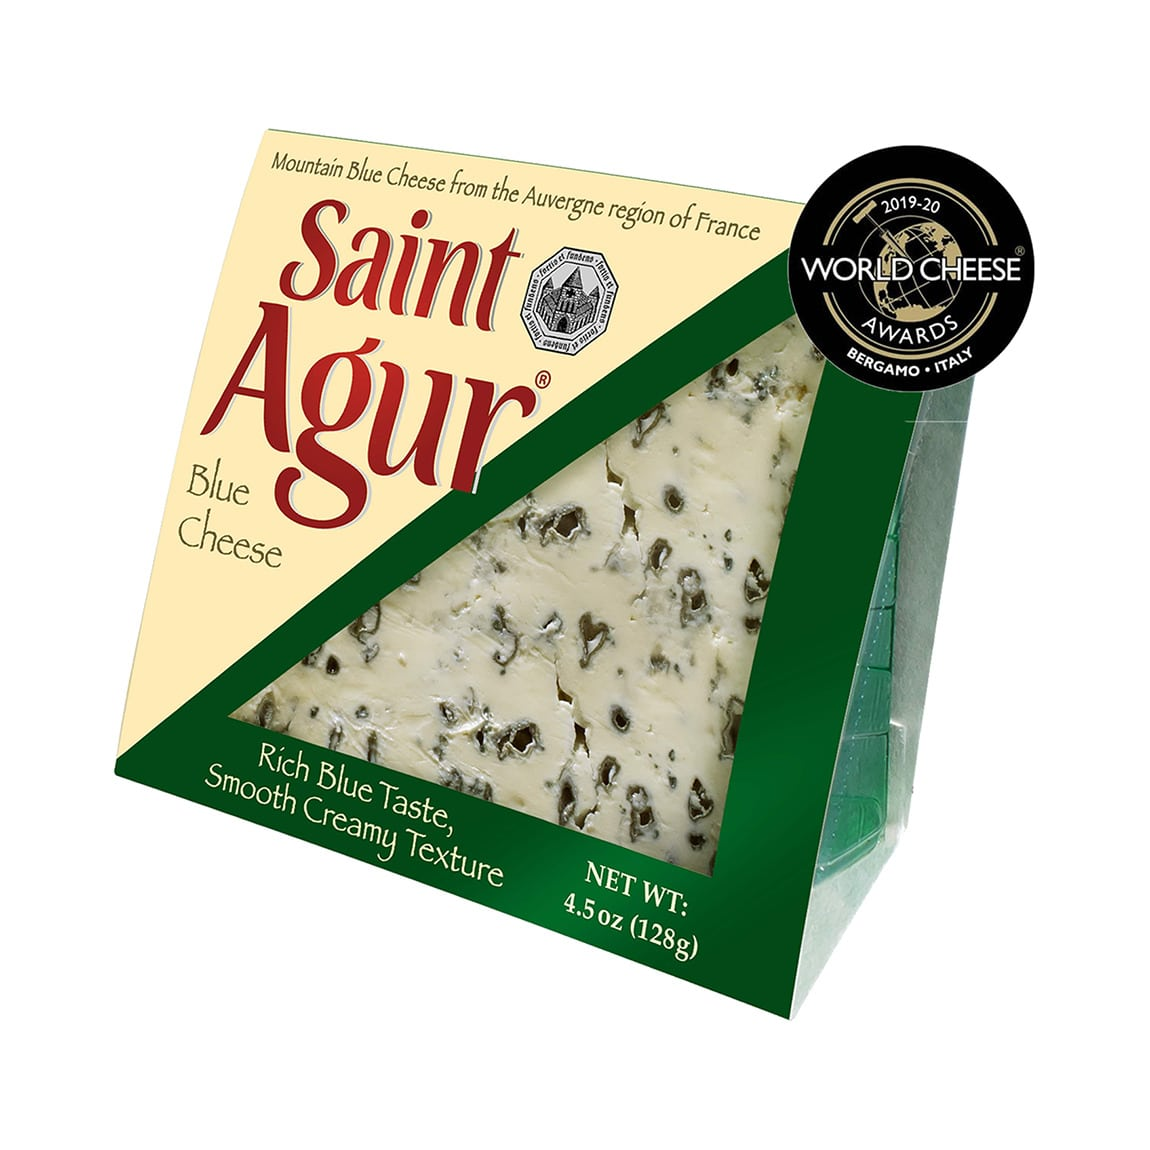 Saint Agur Blue Cheese packaging